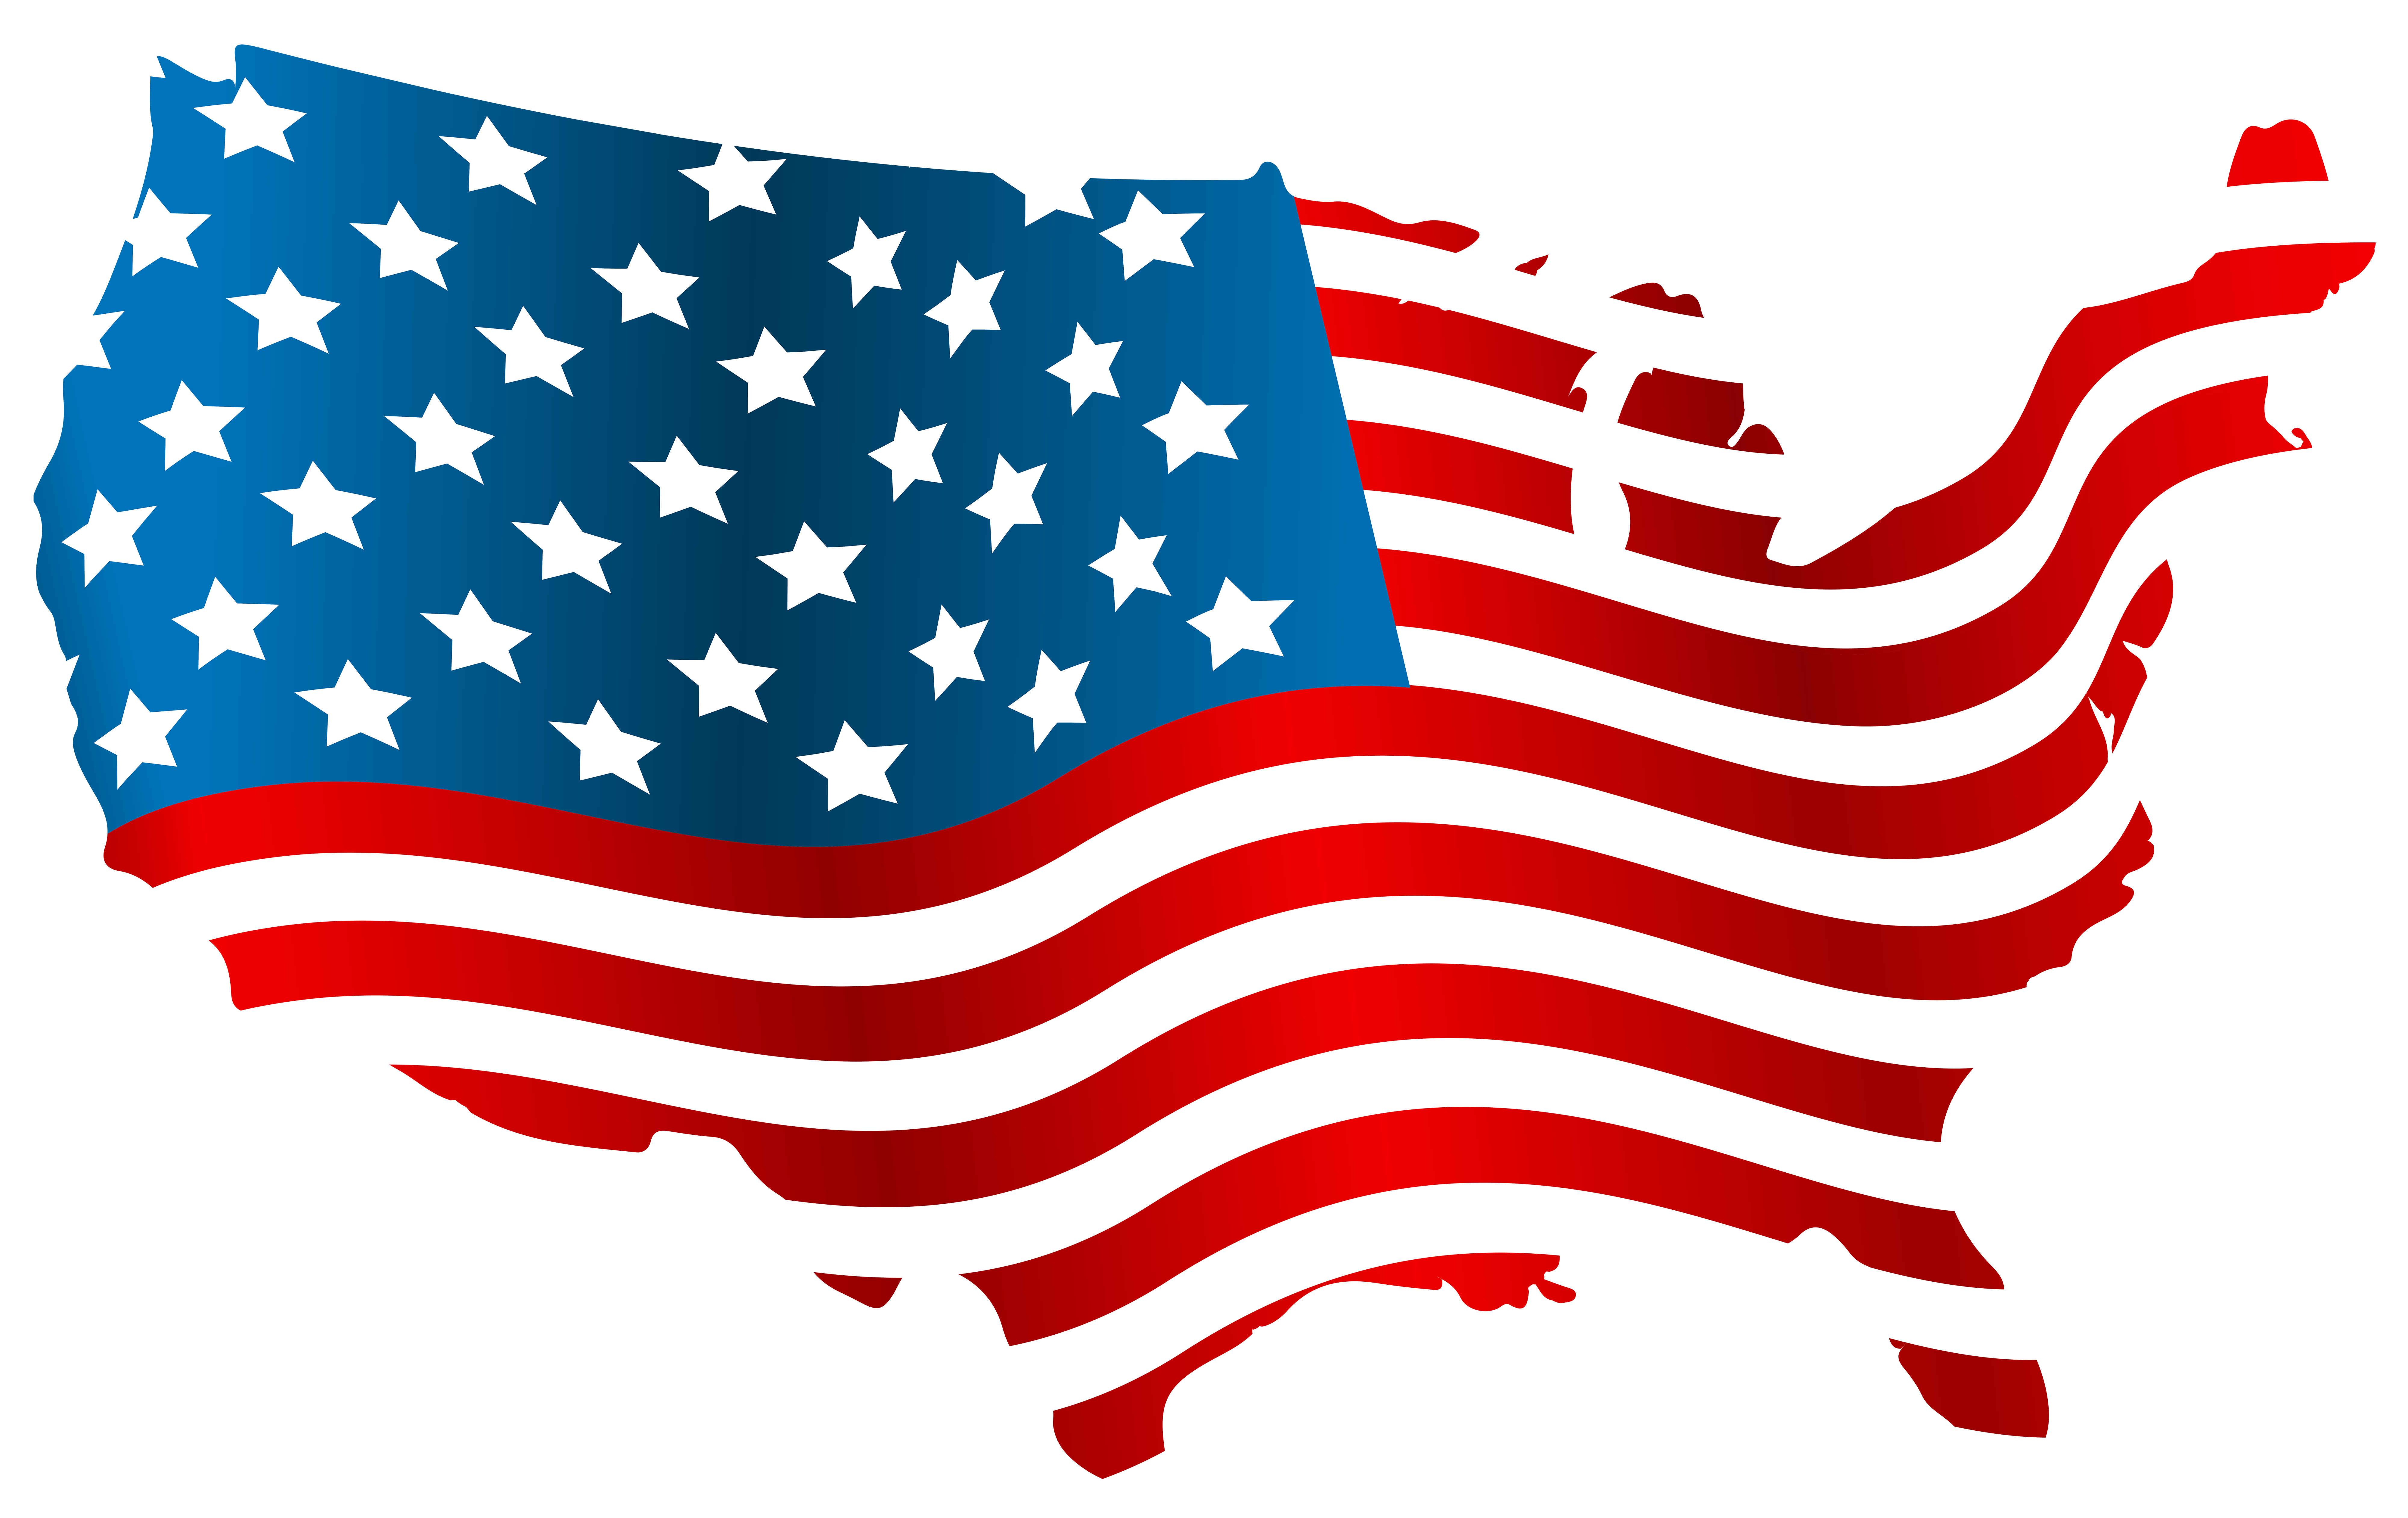 United states of america flag clipart image stock 28+ Collection of United States Clipart No Background | High quality ... image stock